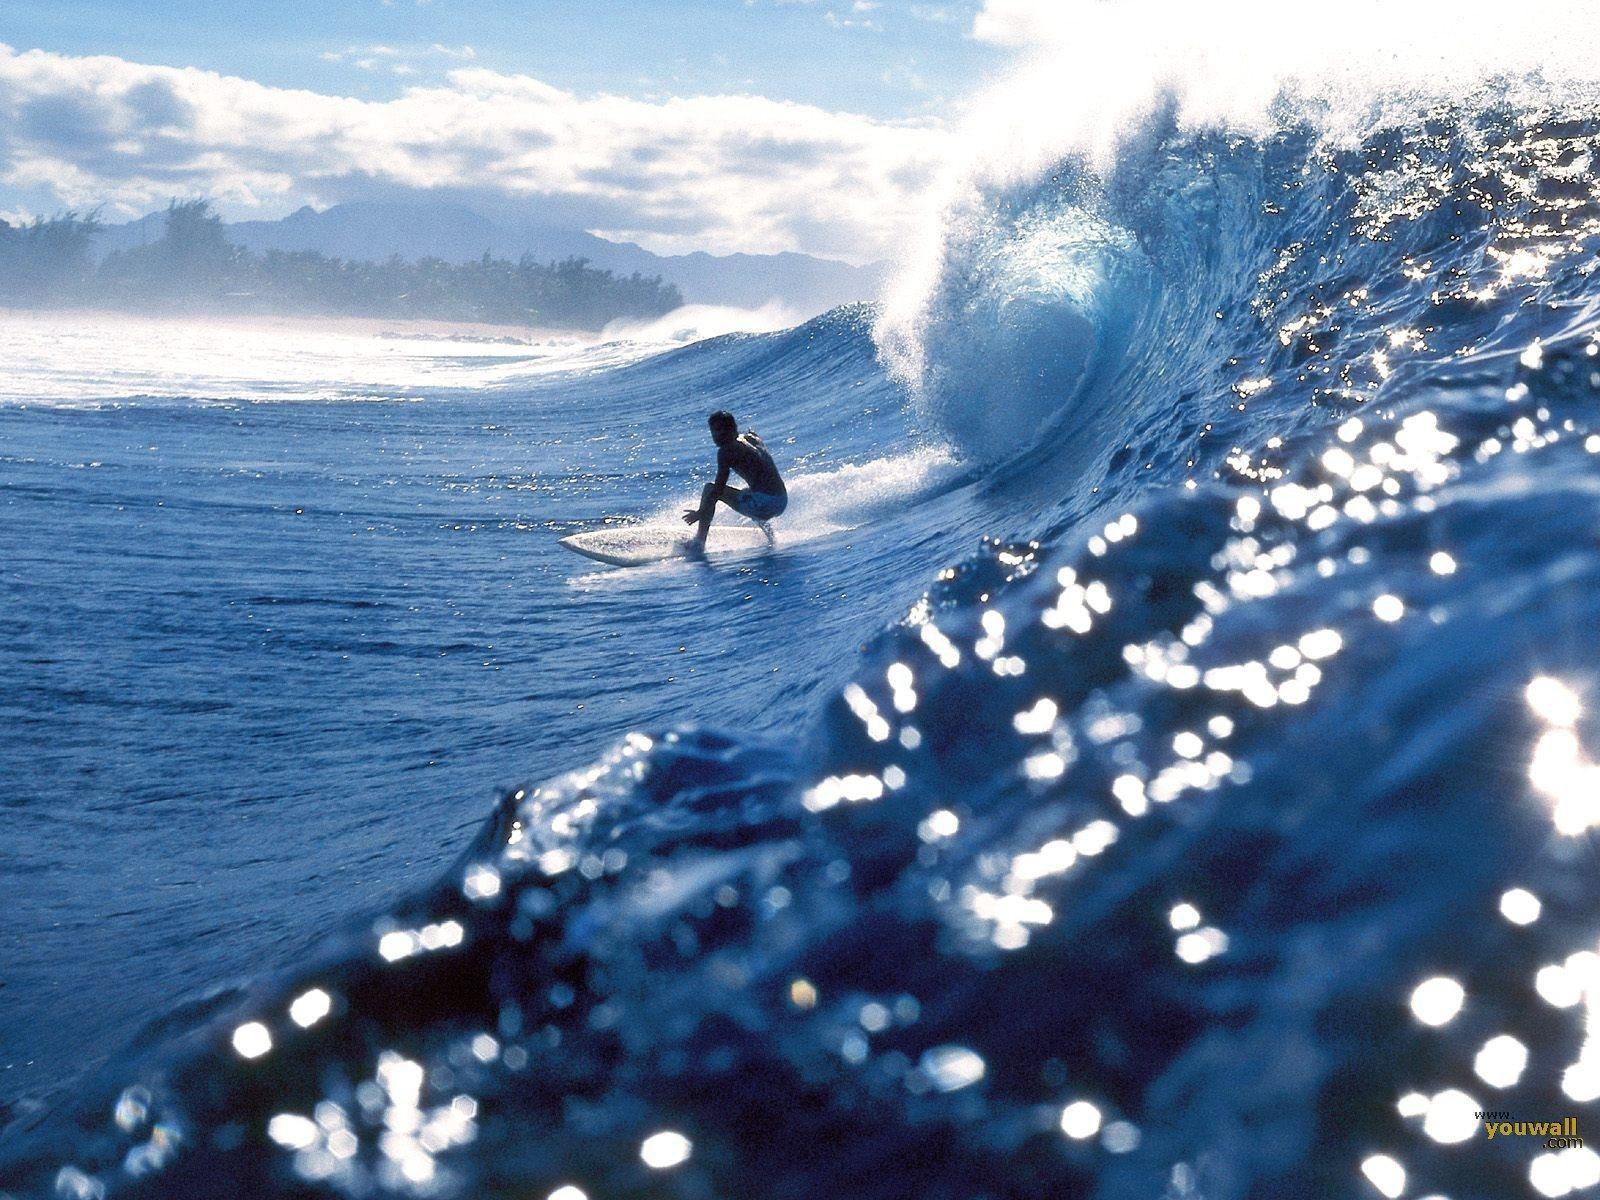 ... Surfing Wallpaper hd backgrounds and make this wallpaper for your